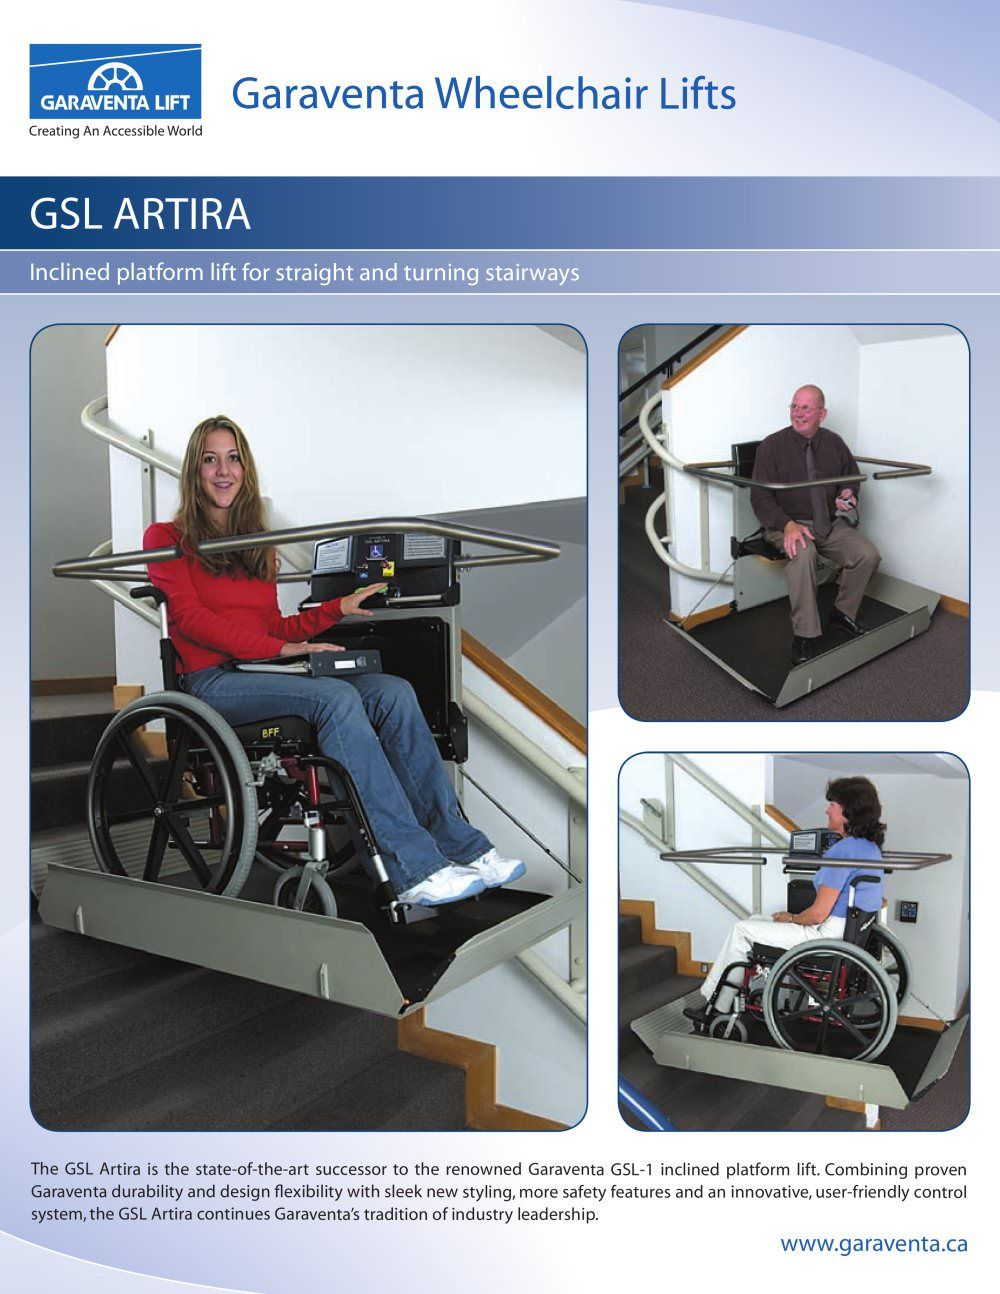 Garaventa wheelchair lifts gwinnett clean and beautiful for Garaventa lift